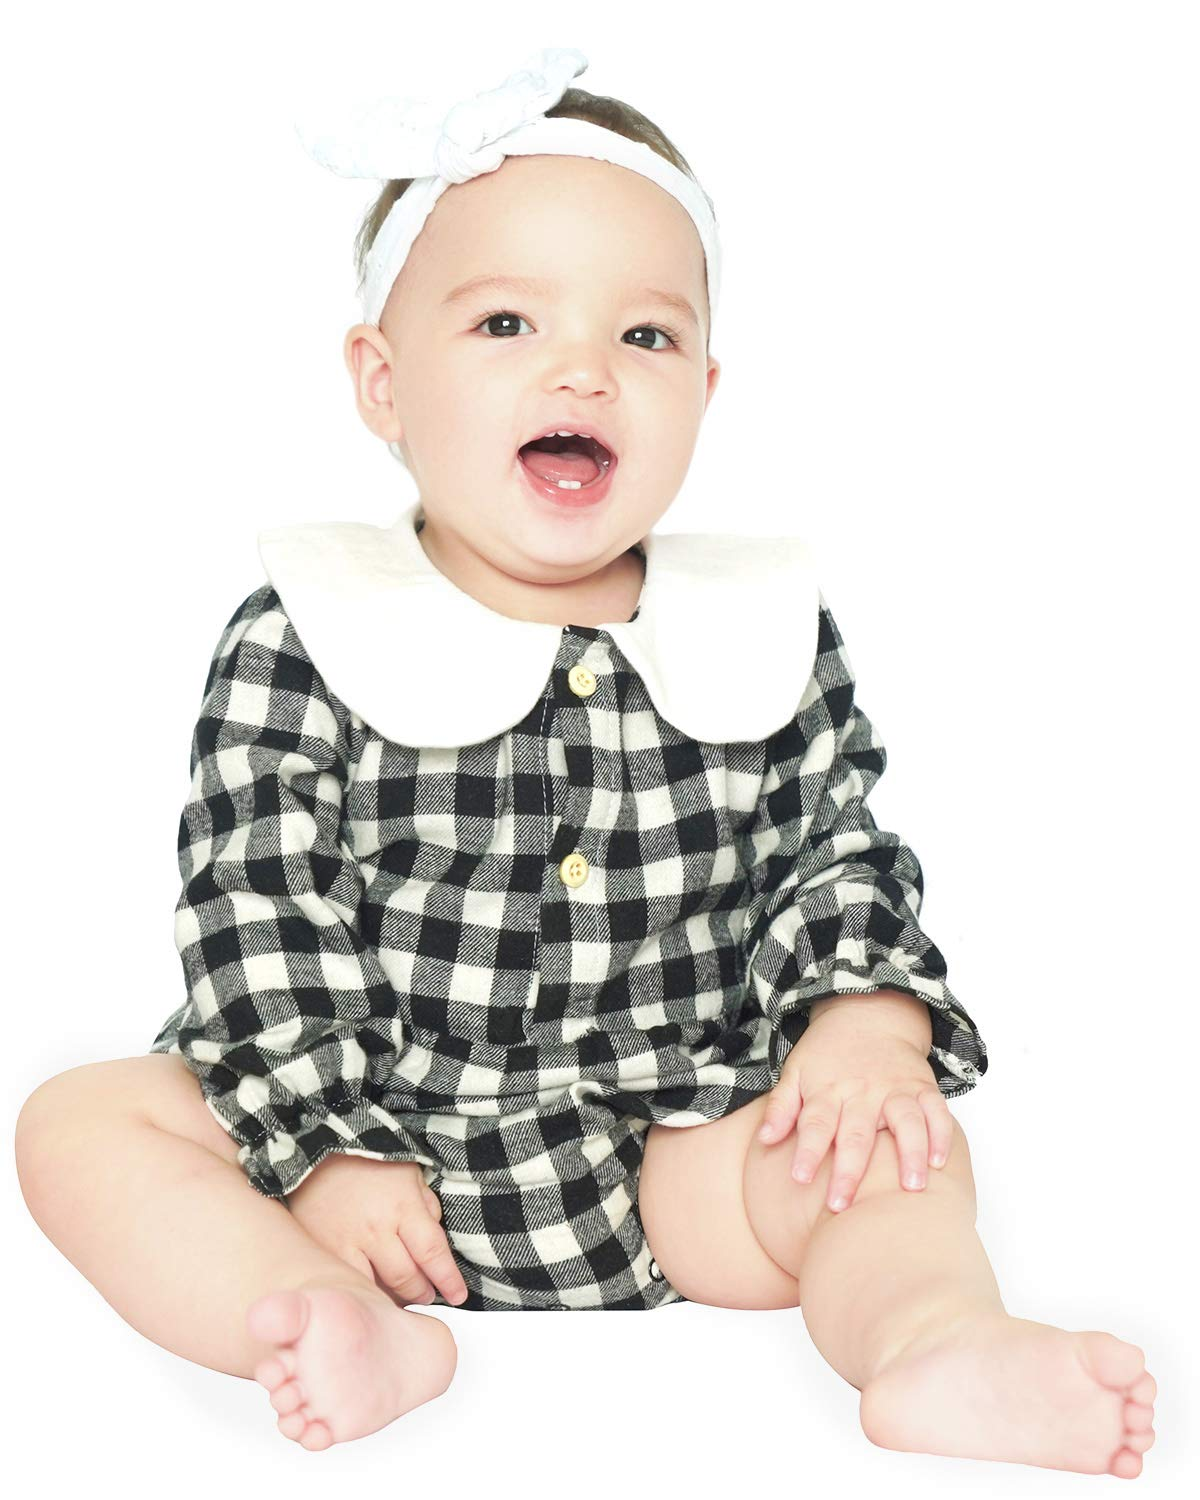 DeerBird Baby Girls Long Sleeve Bodysuits Rompers Plaid Infant Toddler Cotton Jumpsuits Size 12M Black and White Plaid